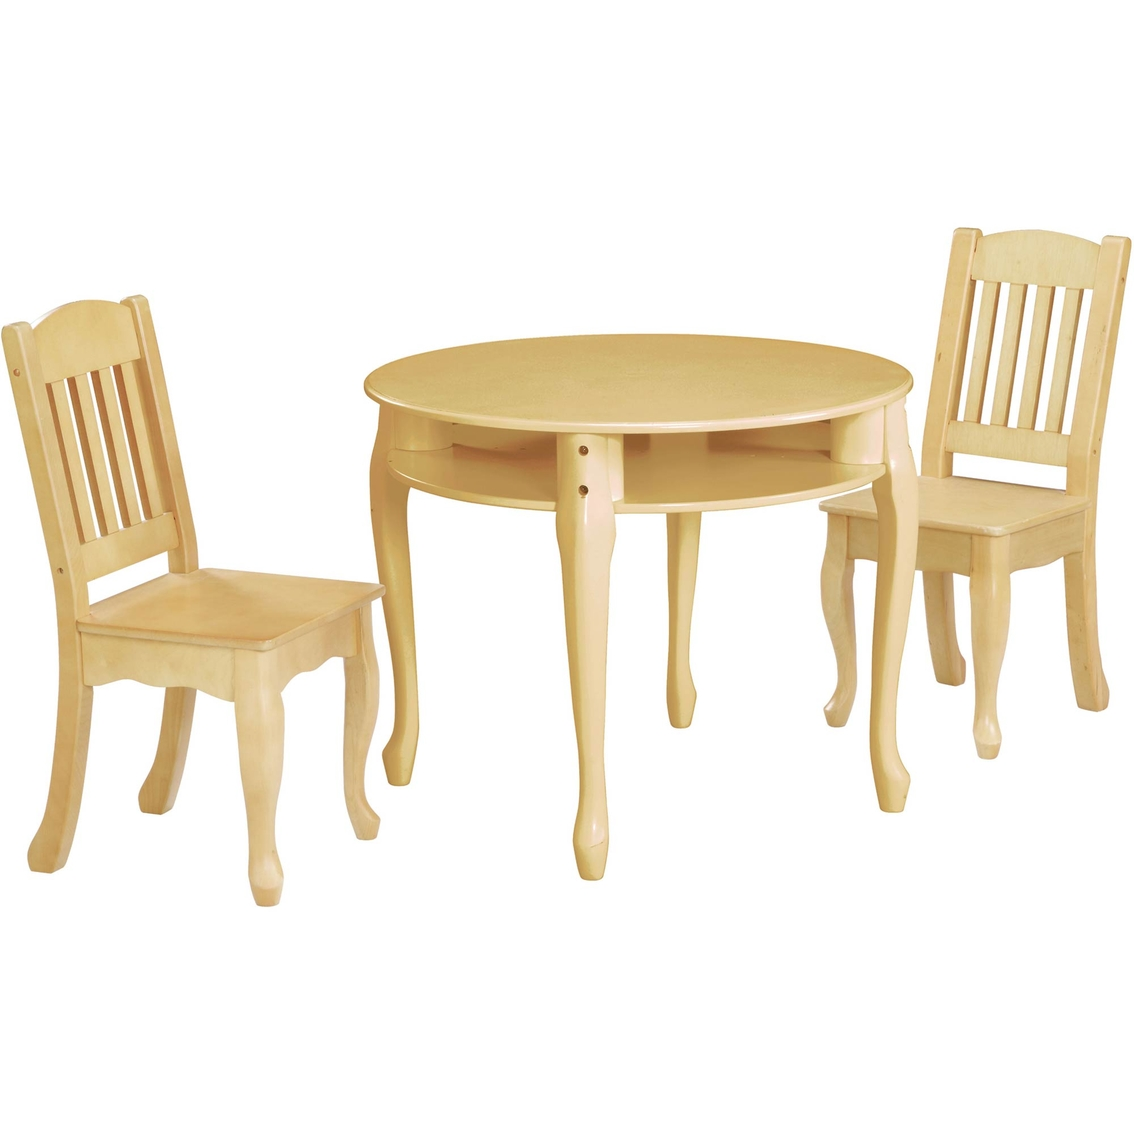 kids round chair rattan garden chairs only uk teamson windsor 3 pc table and set